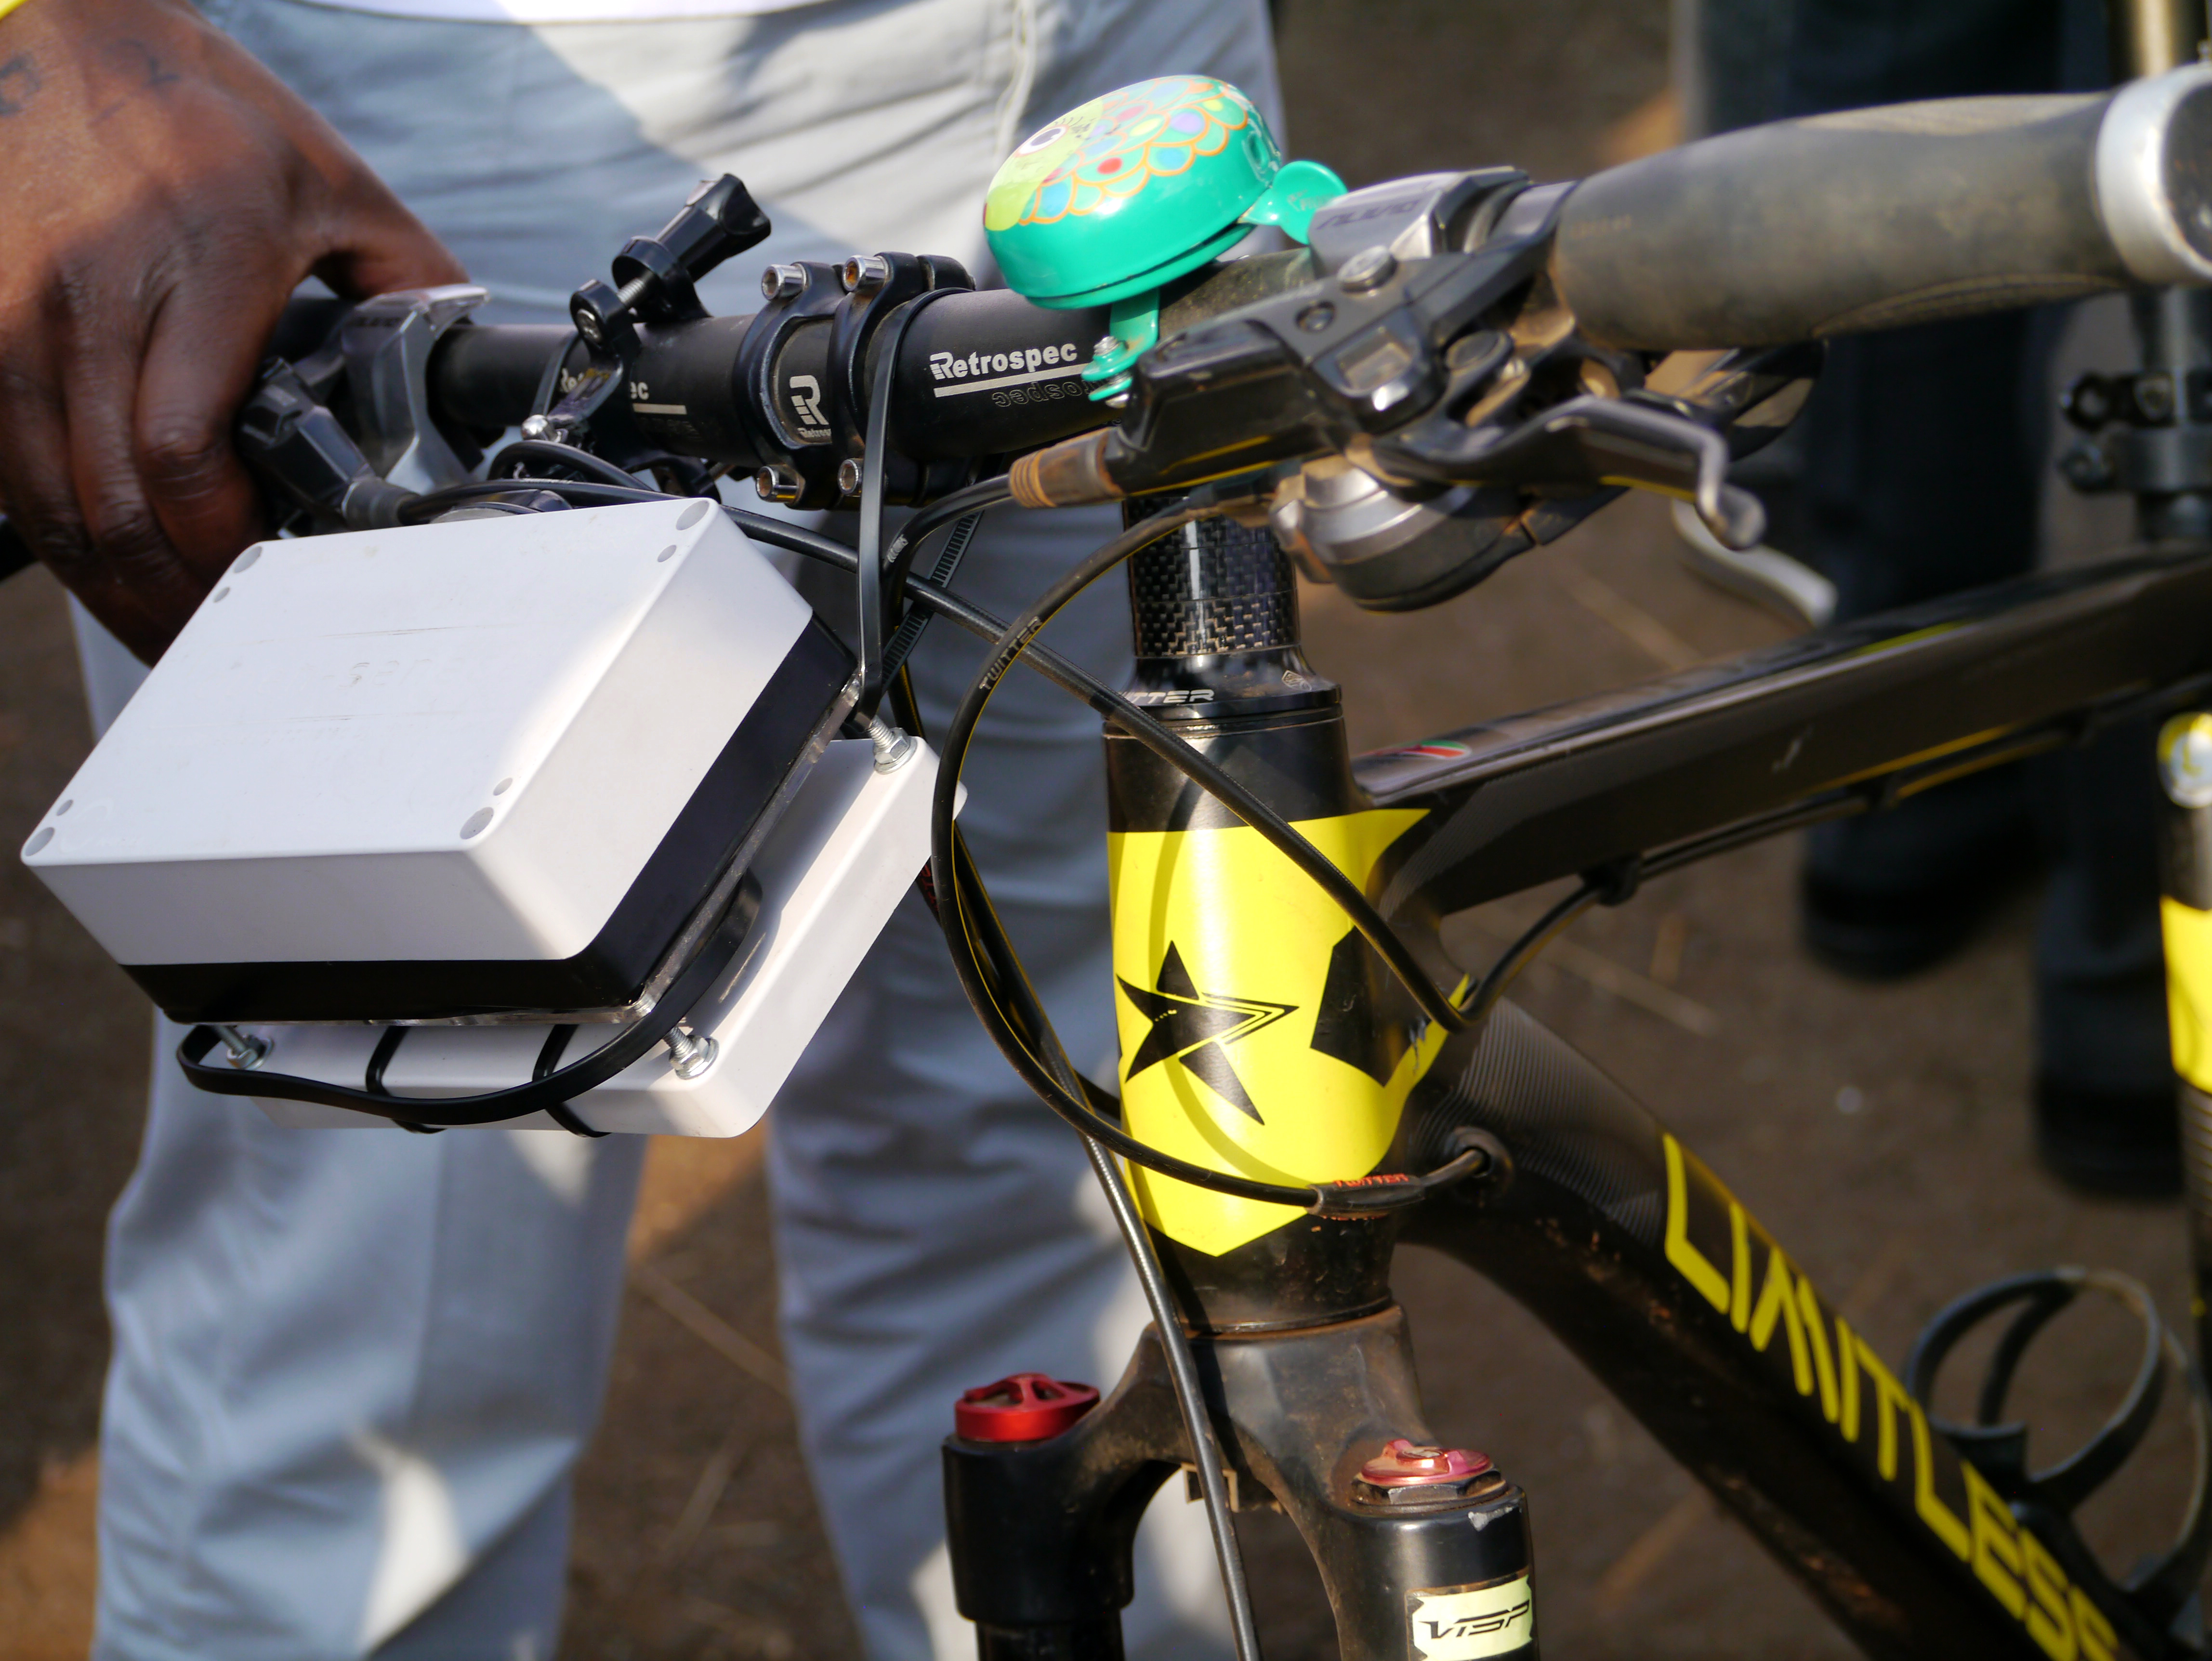 Air Pollution Monitoring Sensor mounted on a bicycle